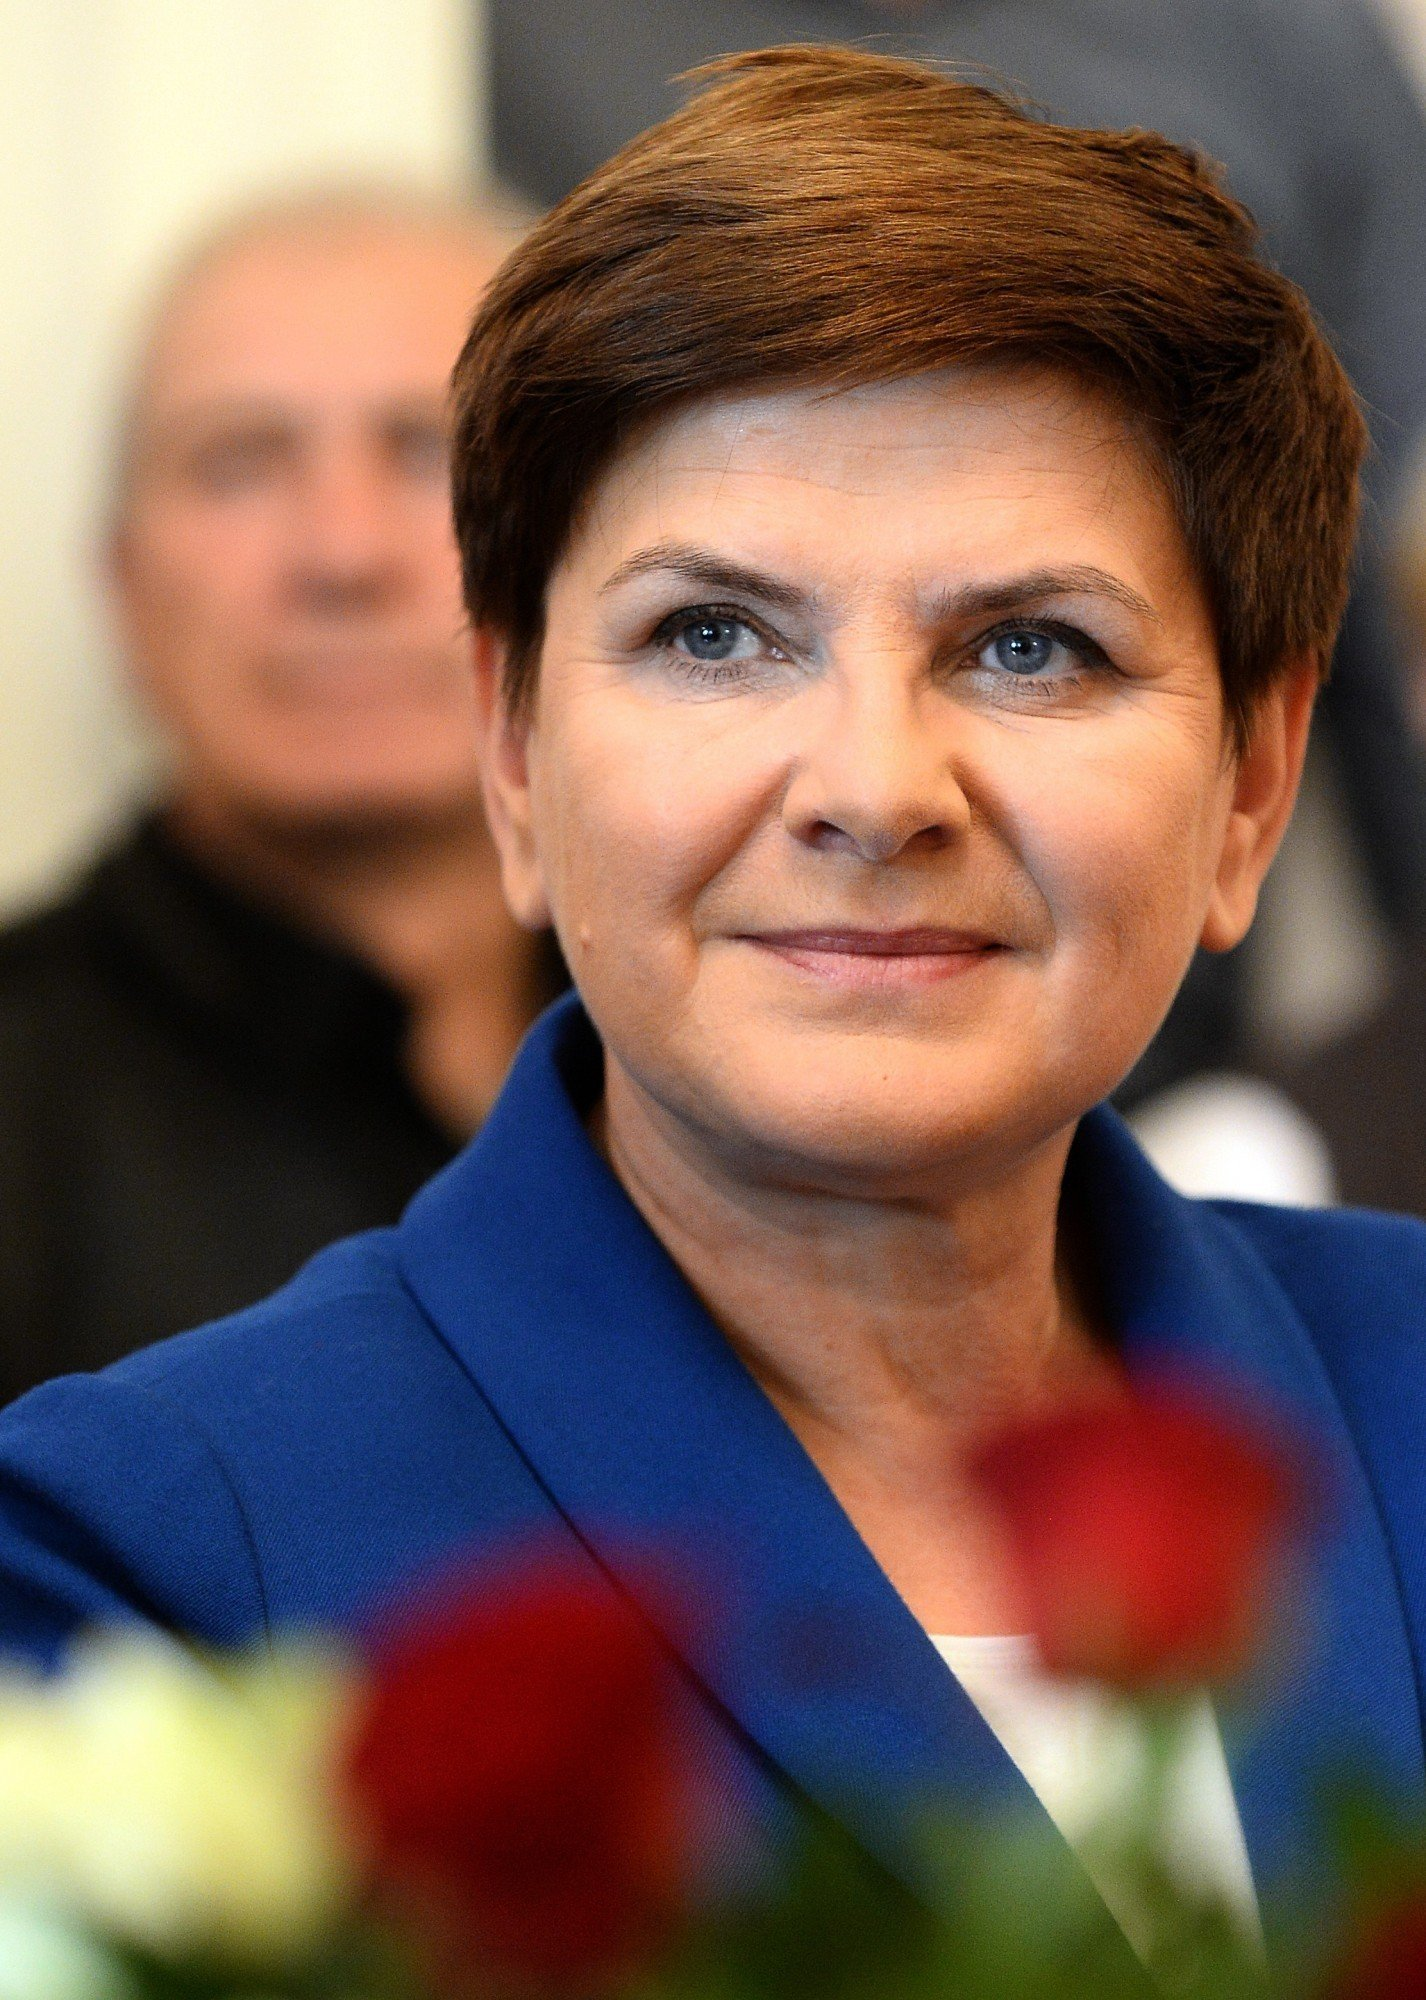 Poland's main opposition Law and Justice party (PiS) candidate for the prime minister's post, Beata Szydlo is pictured during a campaign meeting in Warsaw on October 17, 2015. AFP PHOTO / JANEK SKARZYNSKI (Photo credit should read JANEK SKARZYNSKI/AFP/Getty Images)